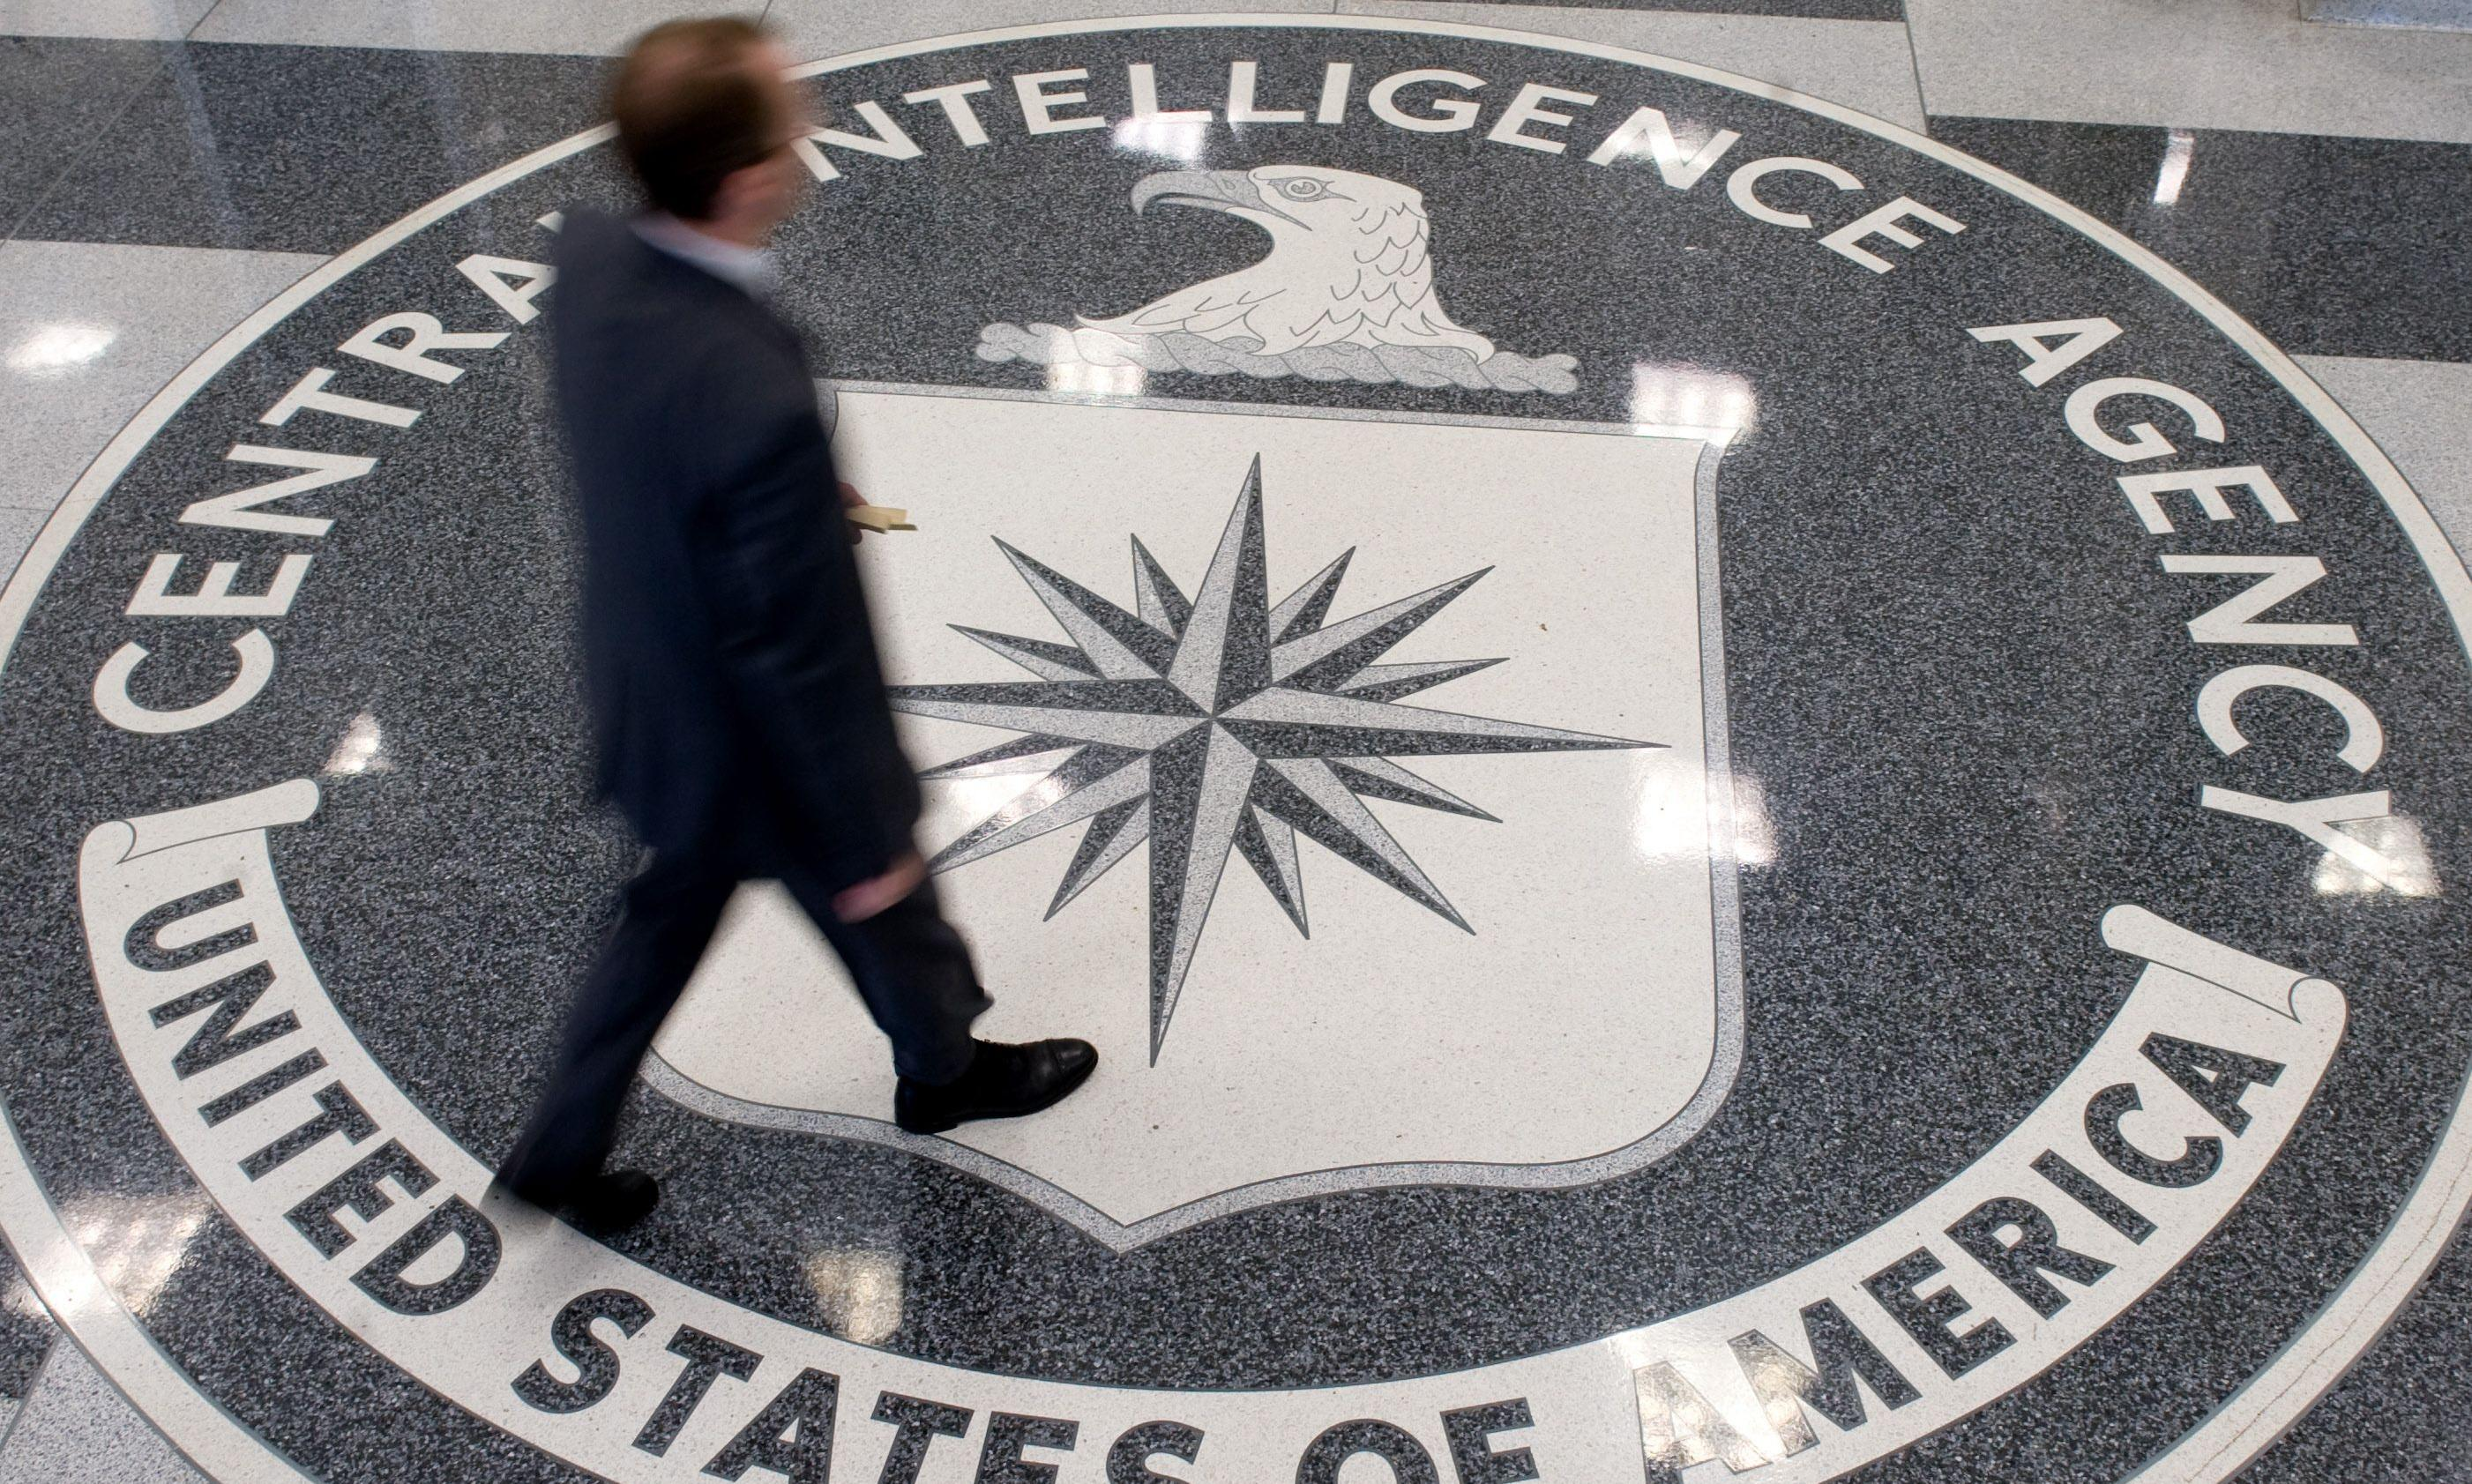 I was a CIA spy in Russia – and now my family is in danger. But Trump can help